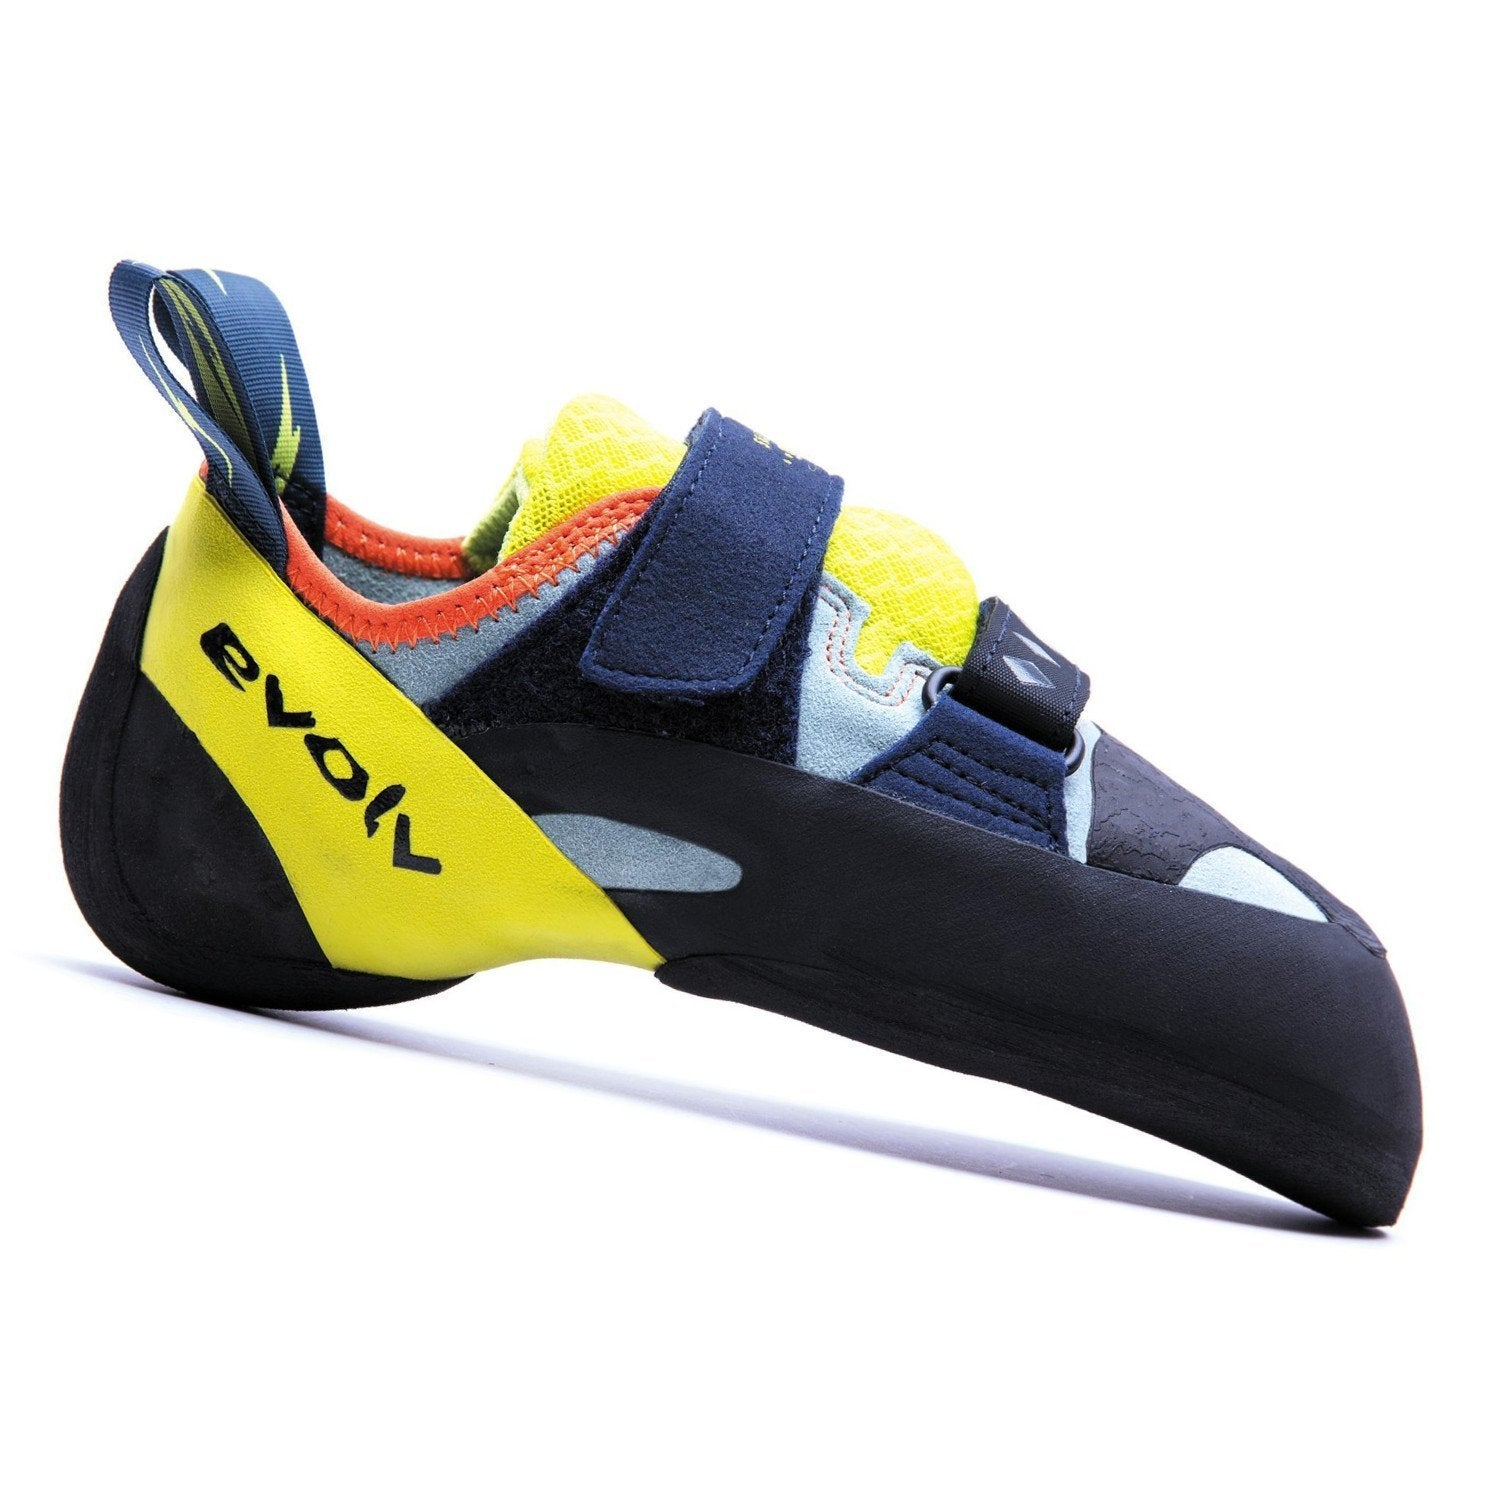 Evolv Shakra climbing shoe, in black, grey and yellow colours